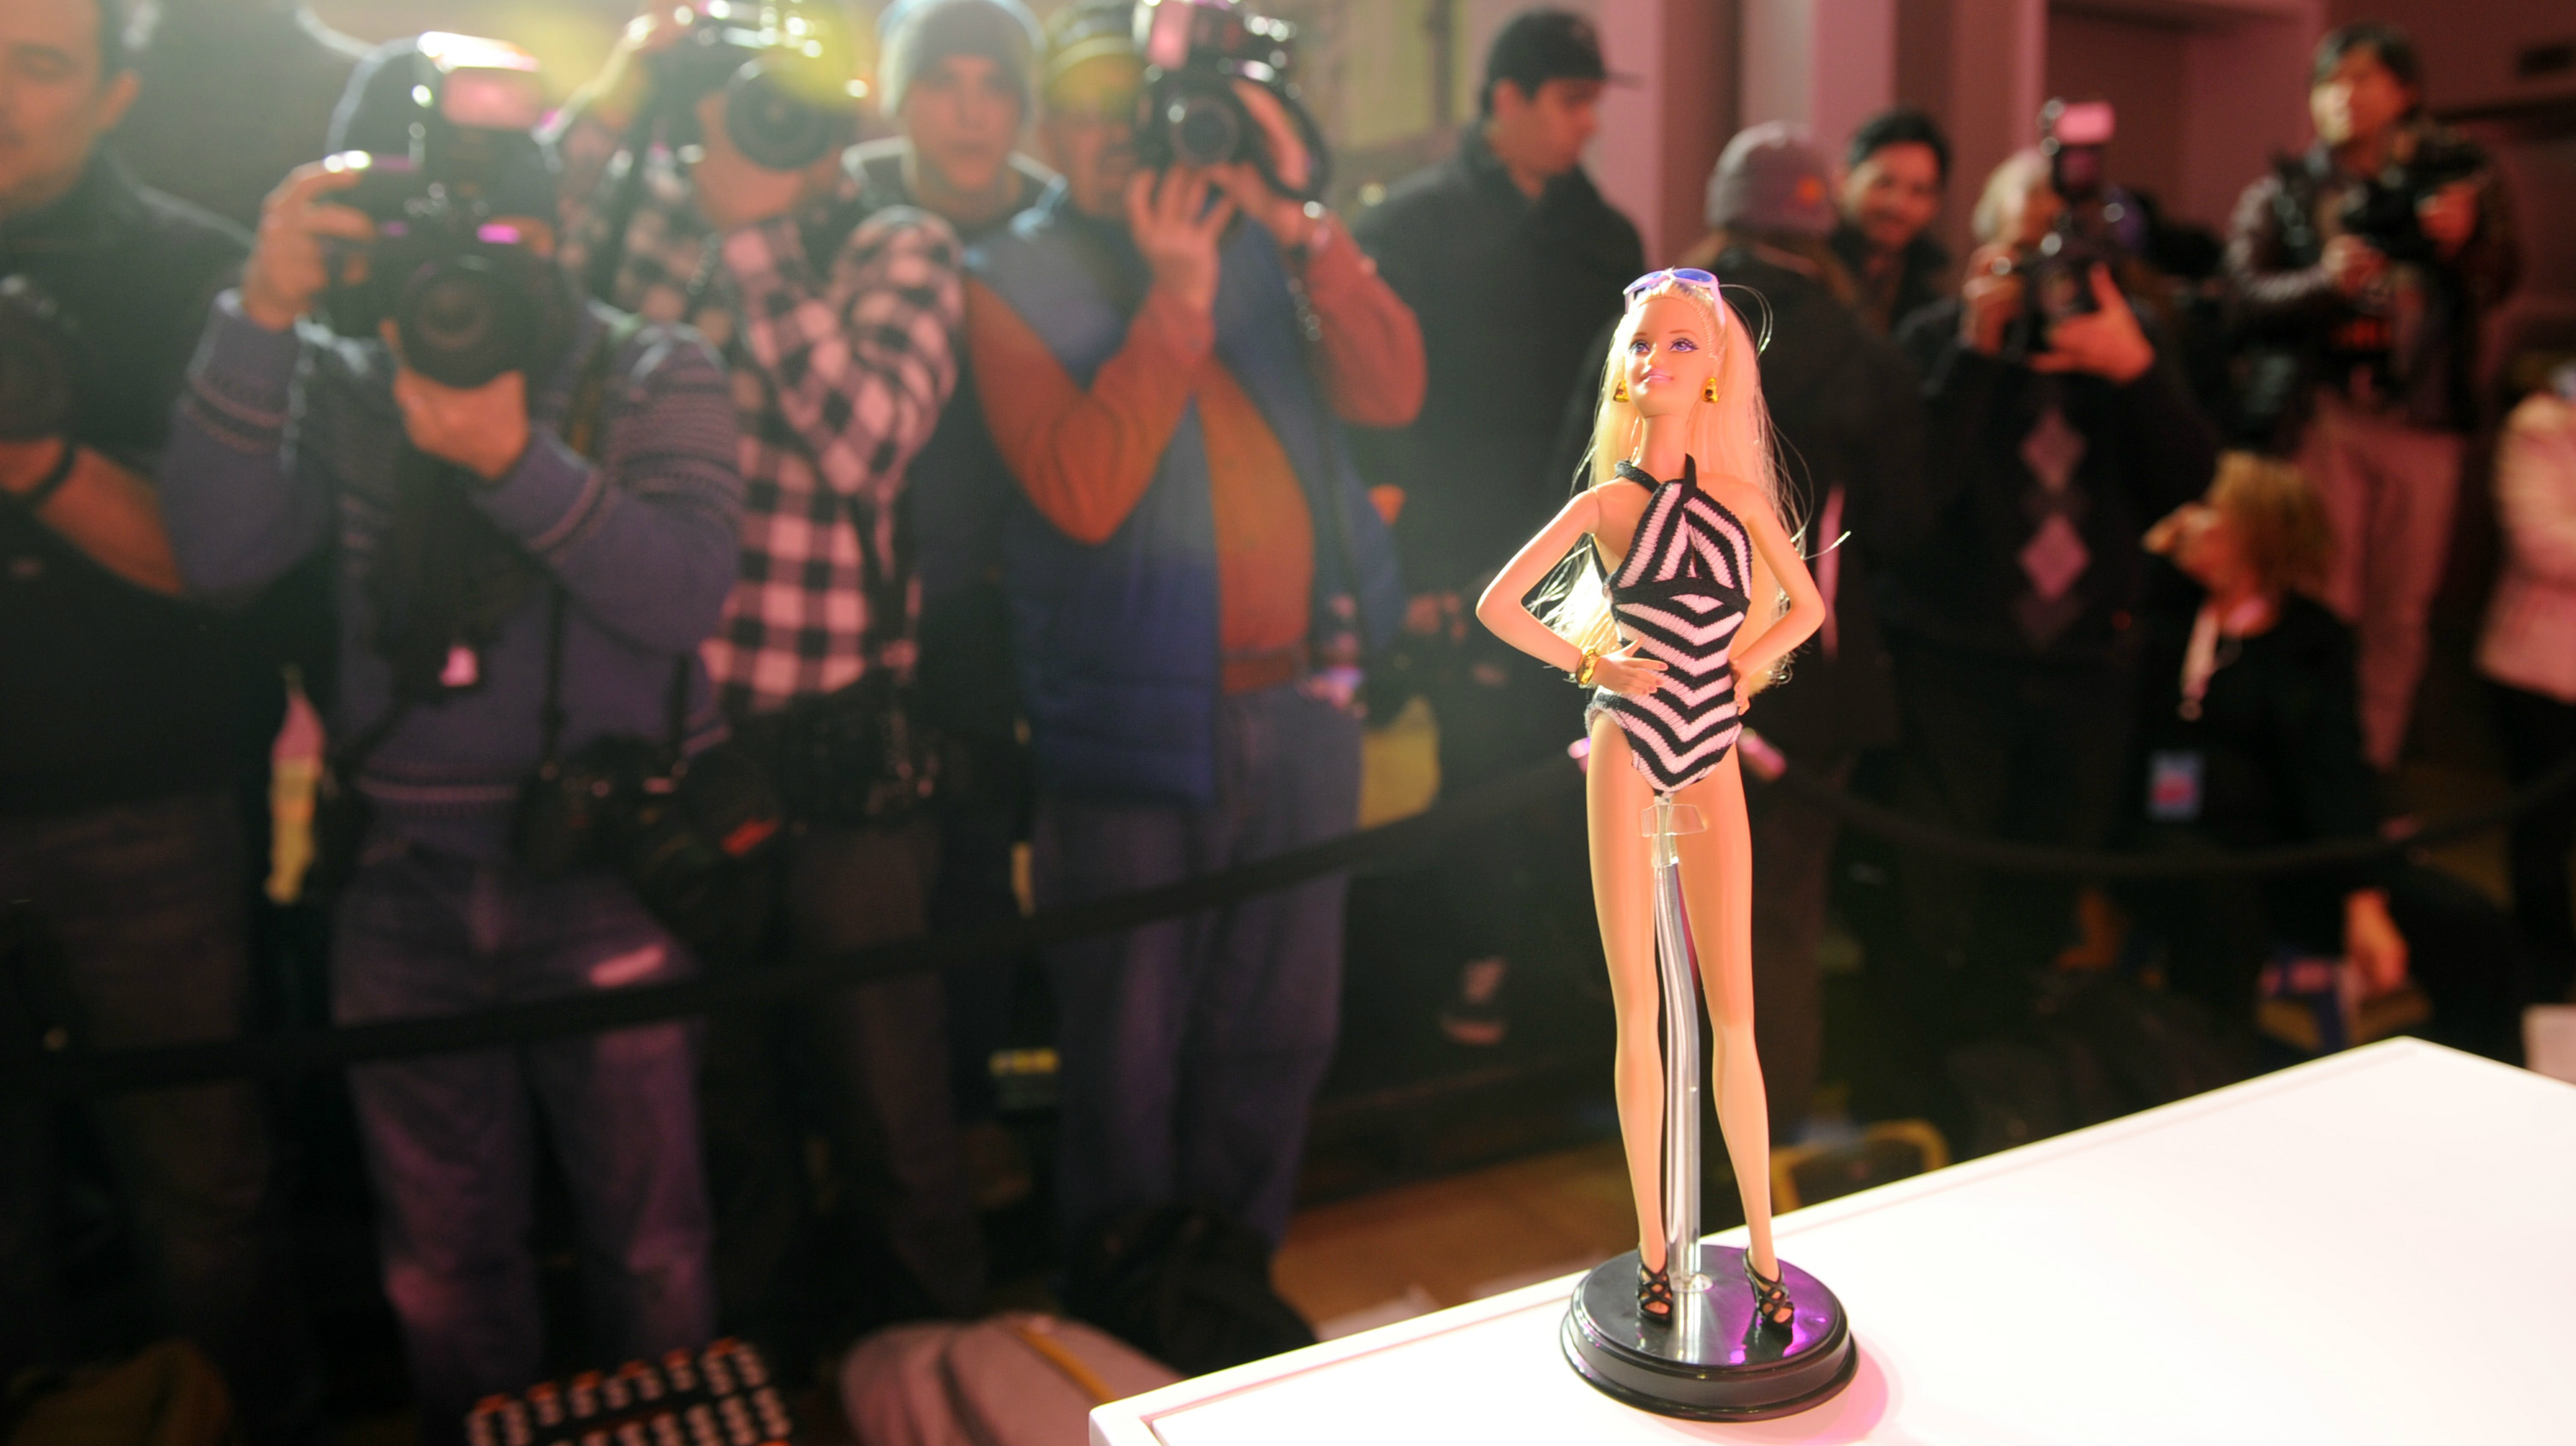 Barbie Doll attends the Barbie and Sports Illustrated Swimsuit 50th anniversary celebration of the Sports Illustrated Swimsuit legends on Monday, Feb. 17, 2014, in New York. (Photo by Diane Bondareff/Invision for Barbie/AP Images)